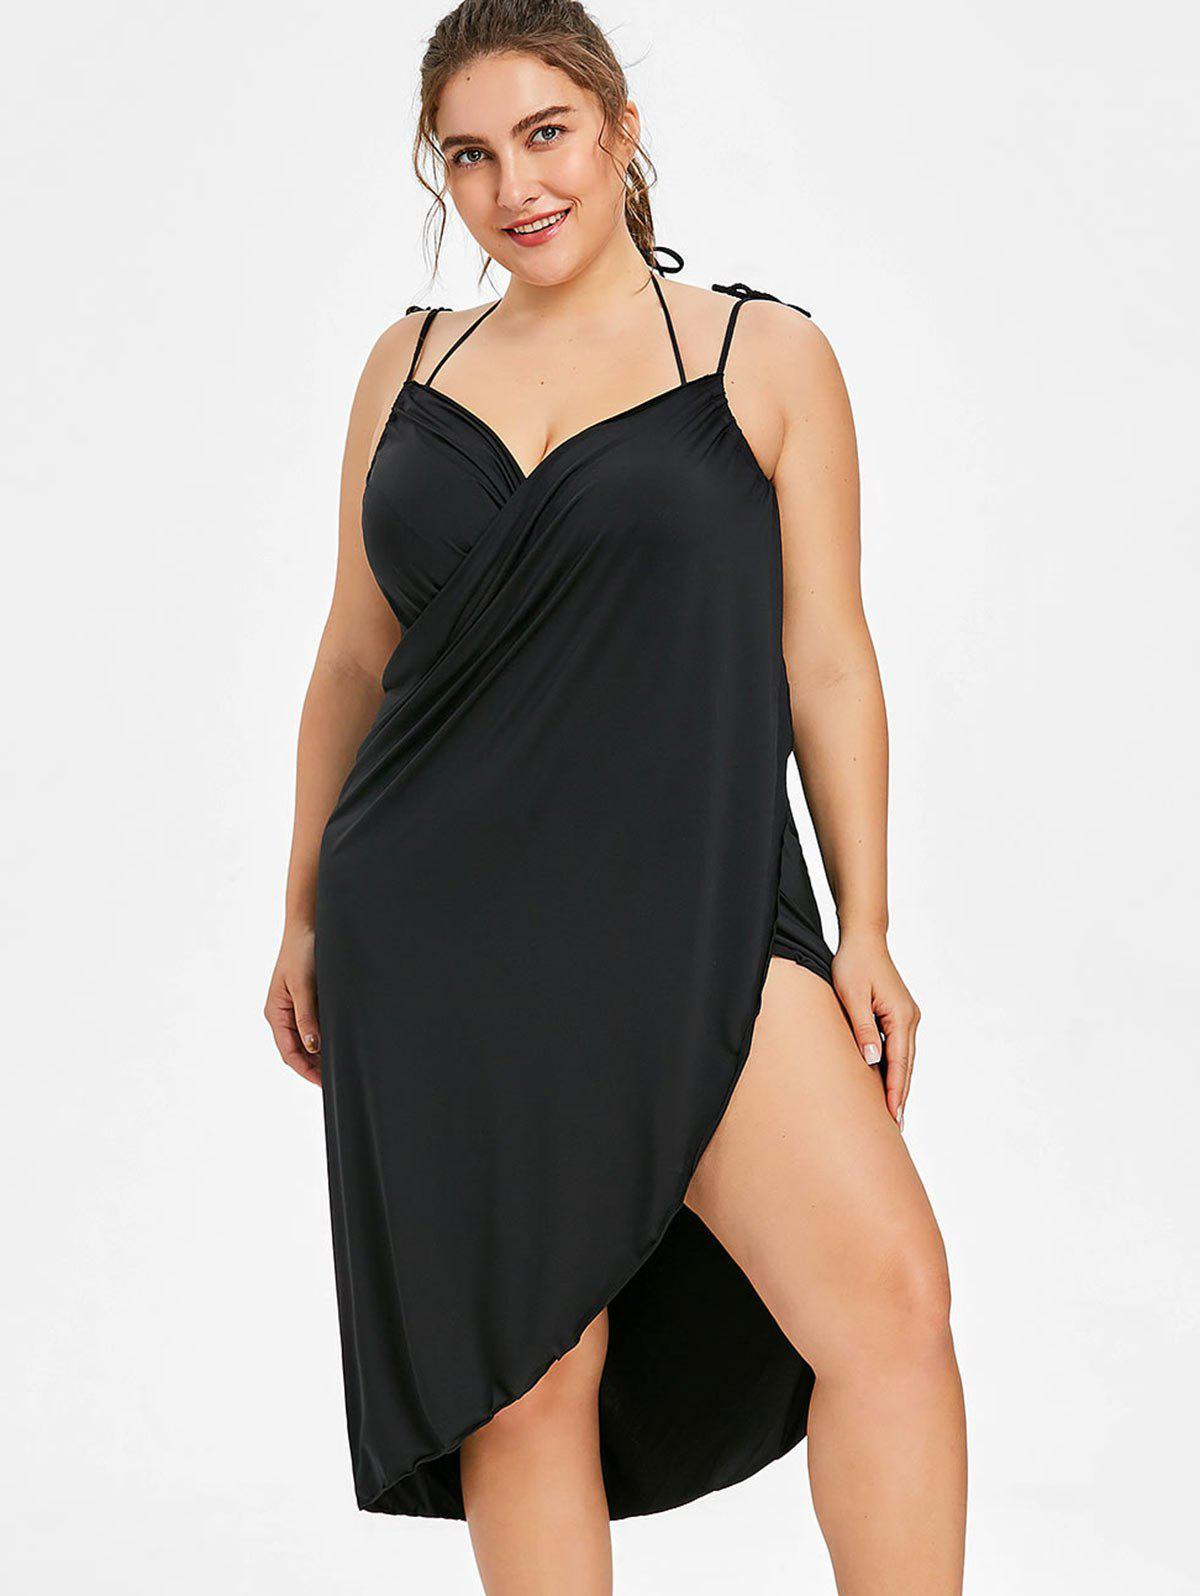 Fancy Semi-sheer Plus Size Wrap Cover Up Dress